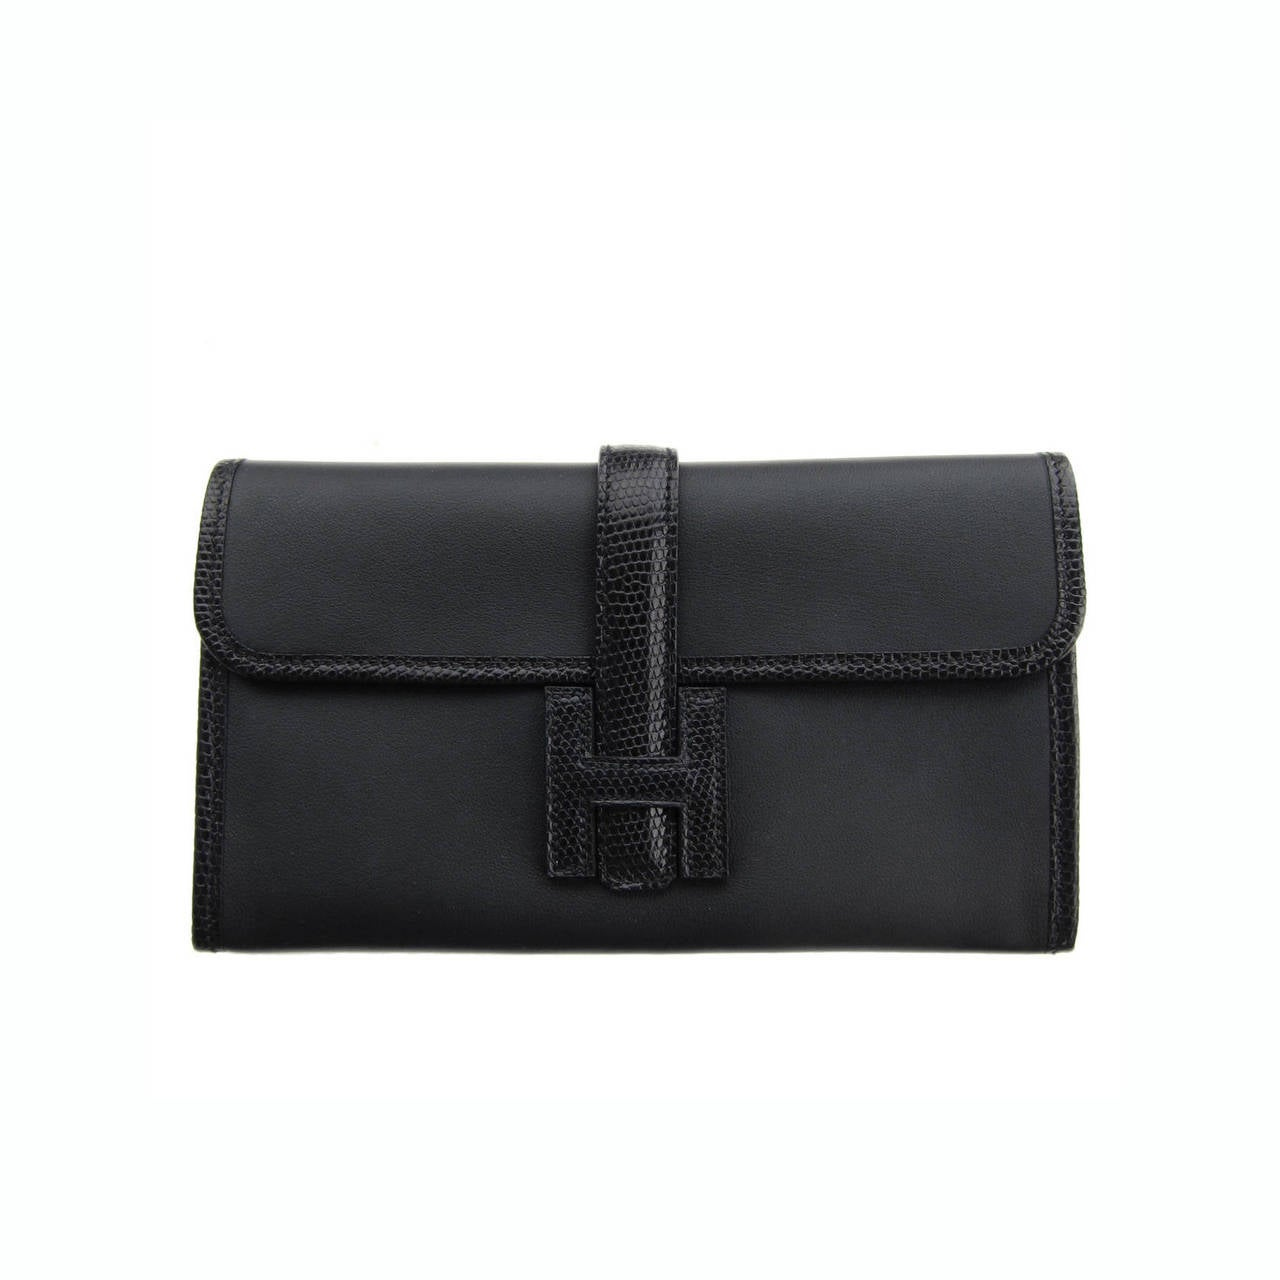 hermes bag price range - Vintage clutches For Sale in USA - 1stdibs